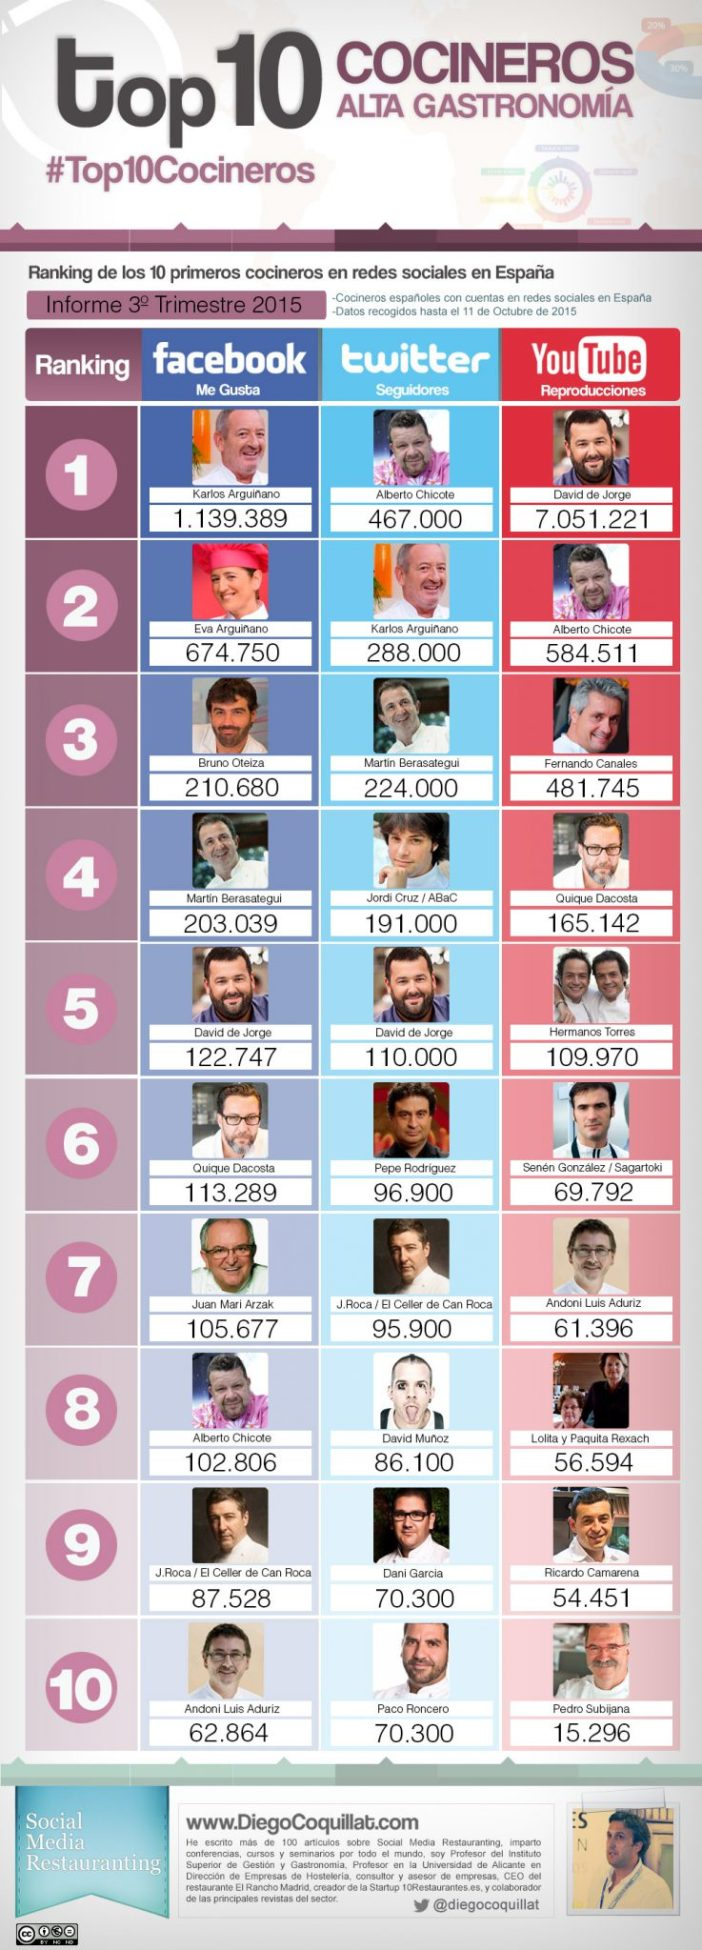 #Top10Cocineros3T15 best chefs in social networks in Spain